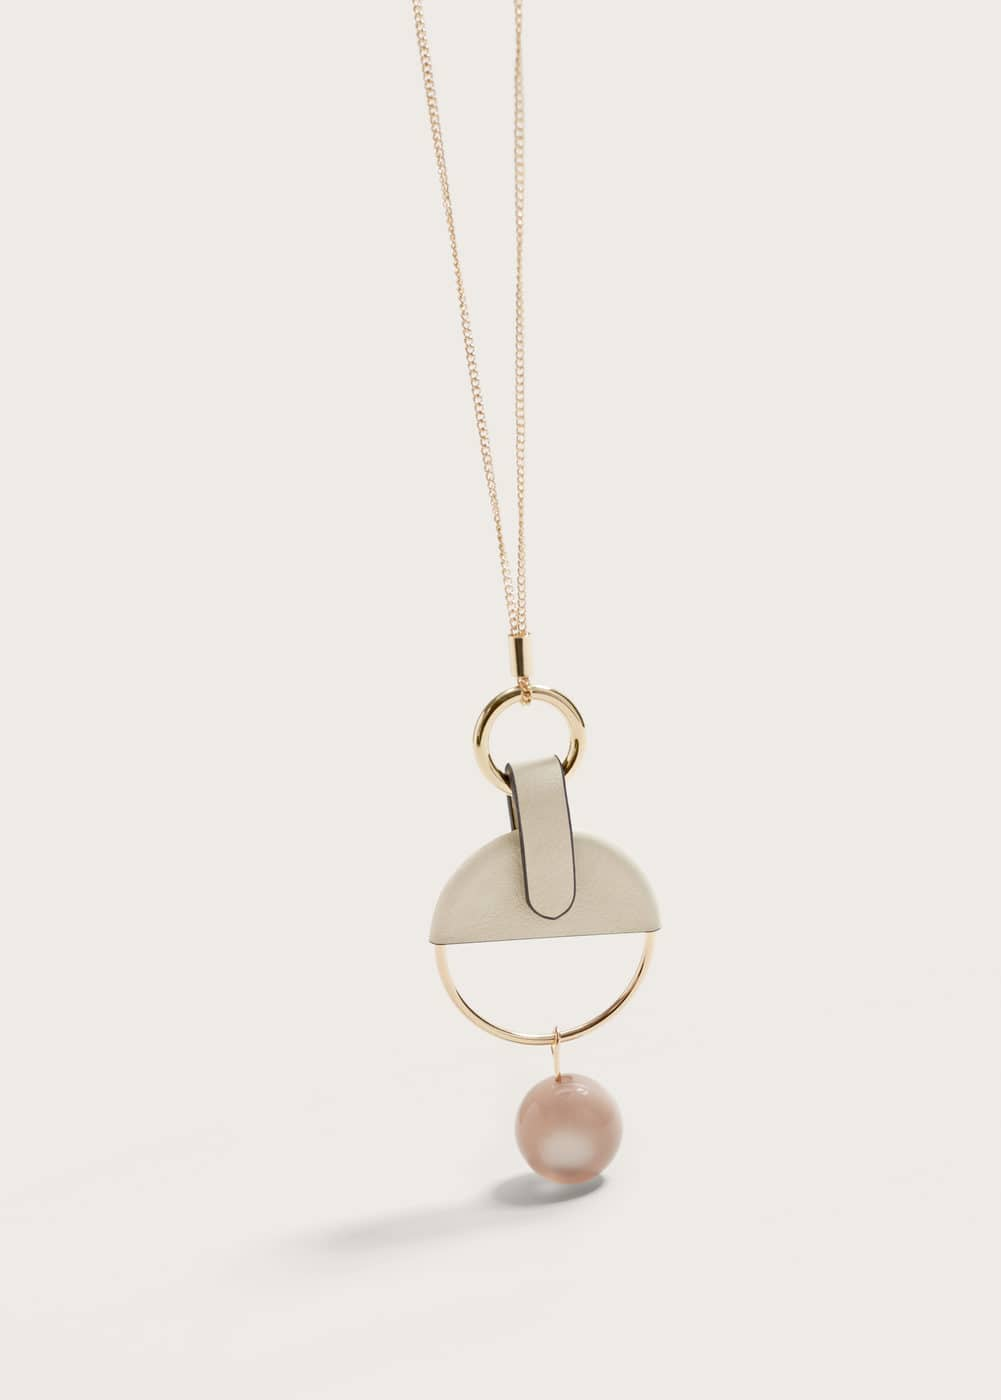 Circular embellishment necklace | VIOLETA BY MANGO